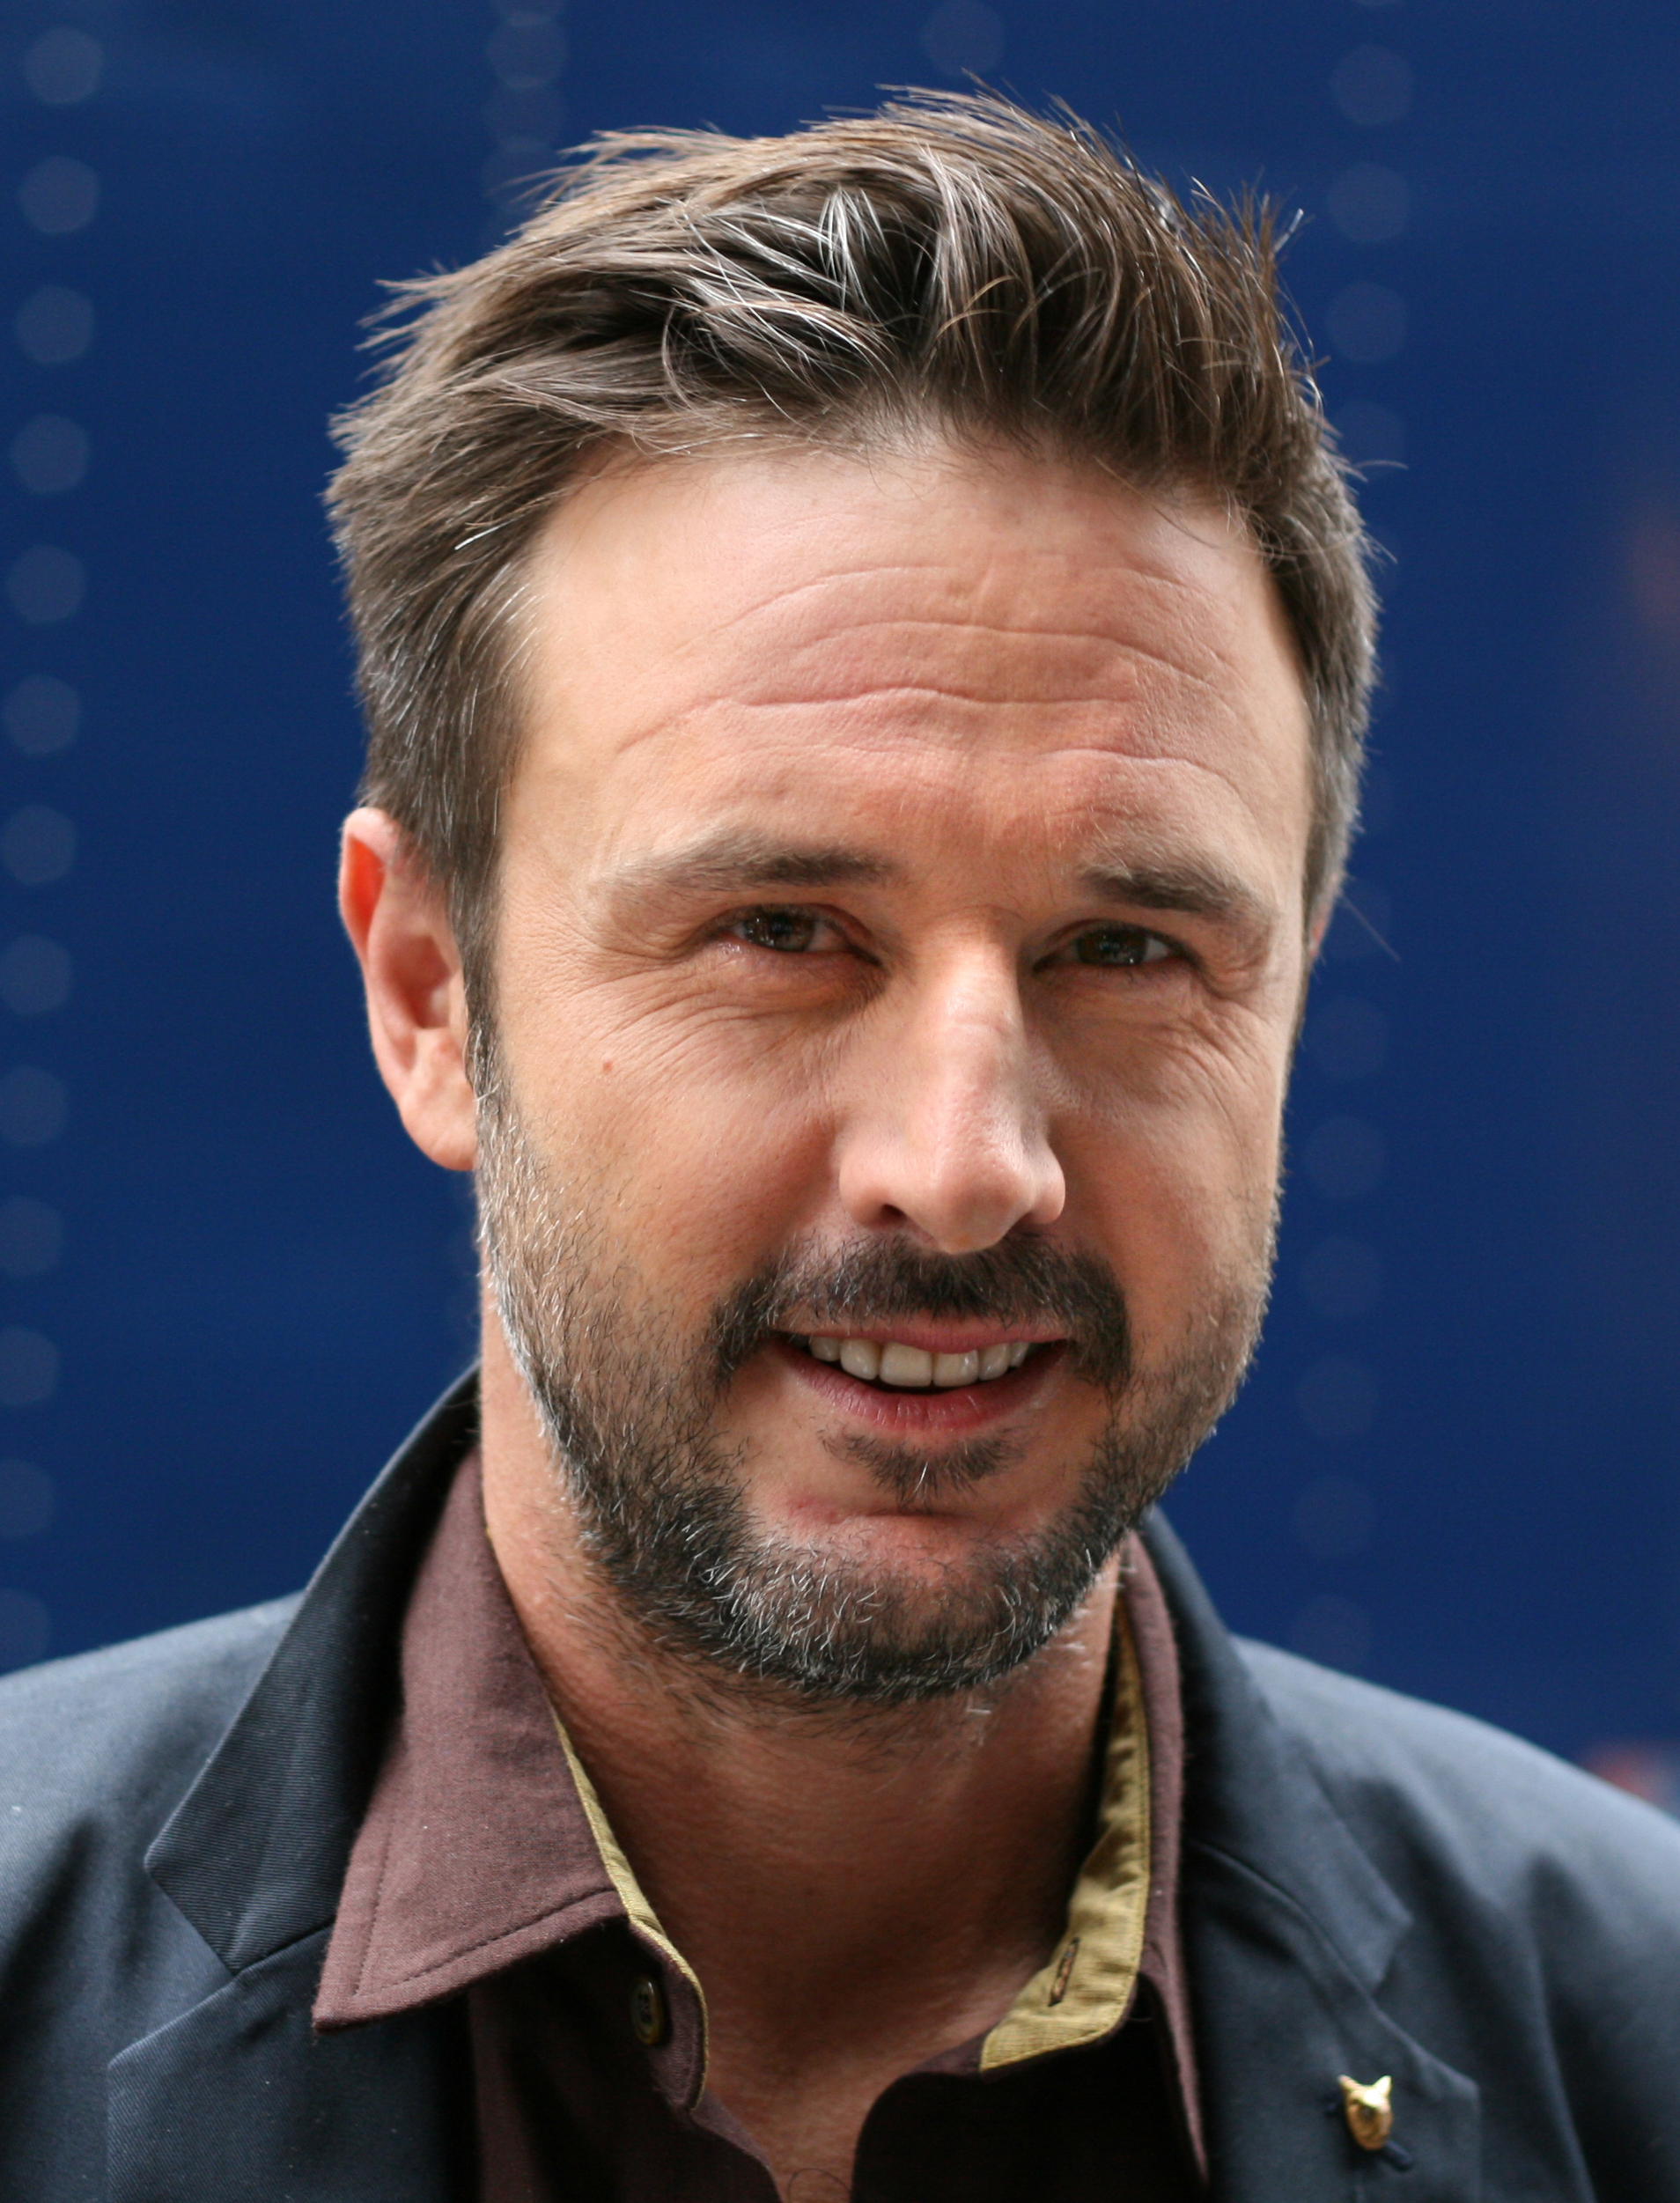 The 47-year old son of father Lewis Arquette and mother Brenda Denaut David Arquette in 2018 photo. David Arquette earned a  million dollar salary - leaving the net worth at 18 million in 2018